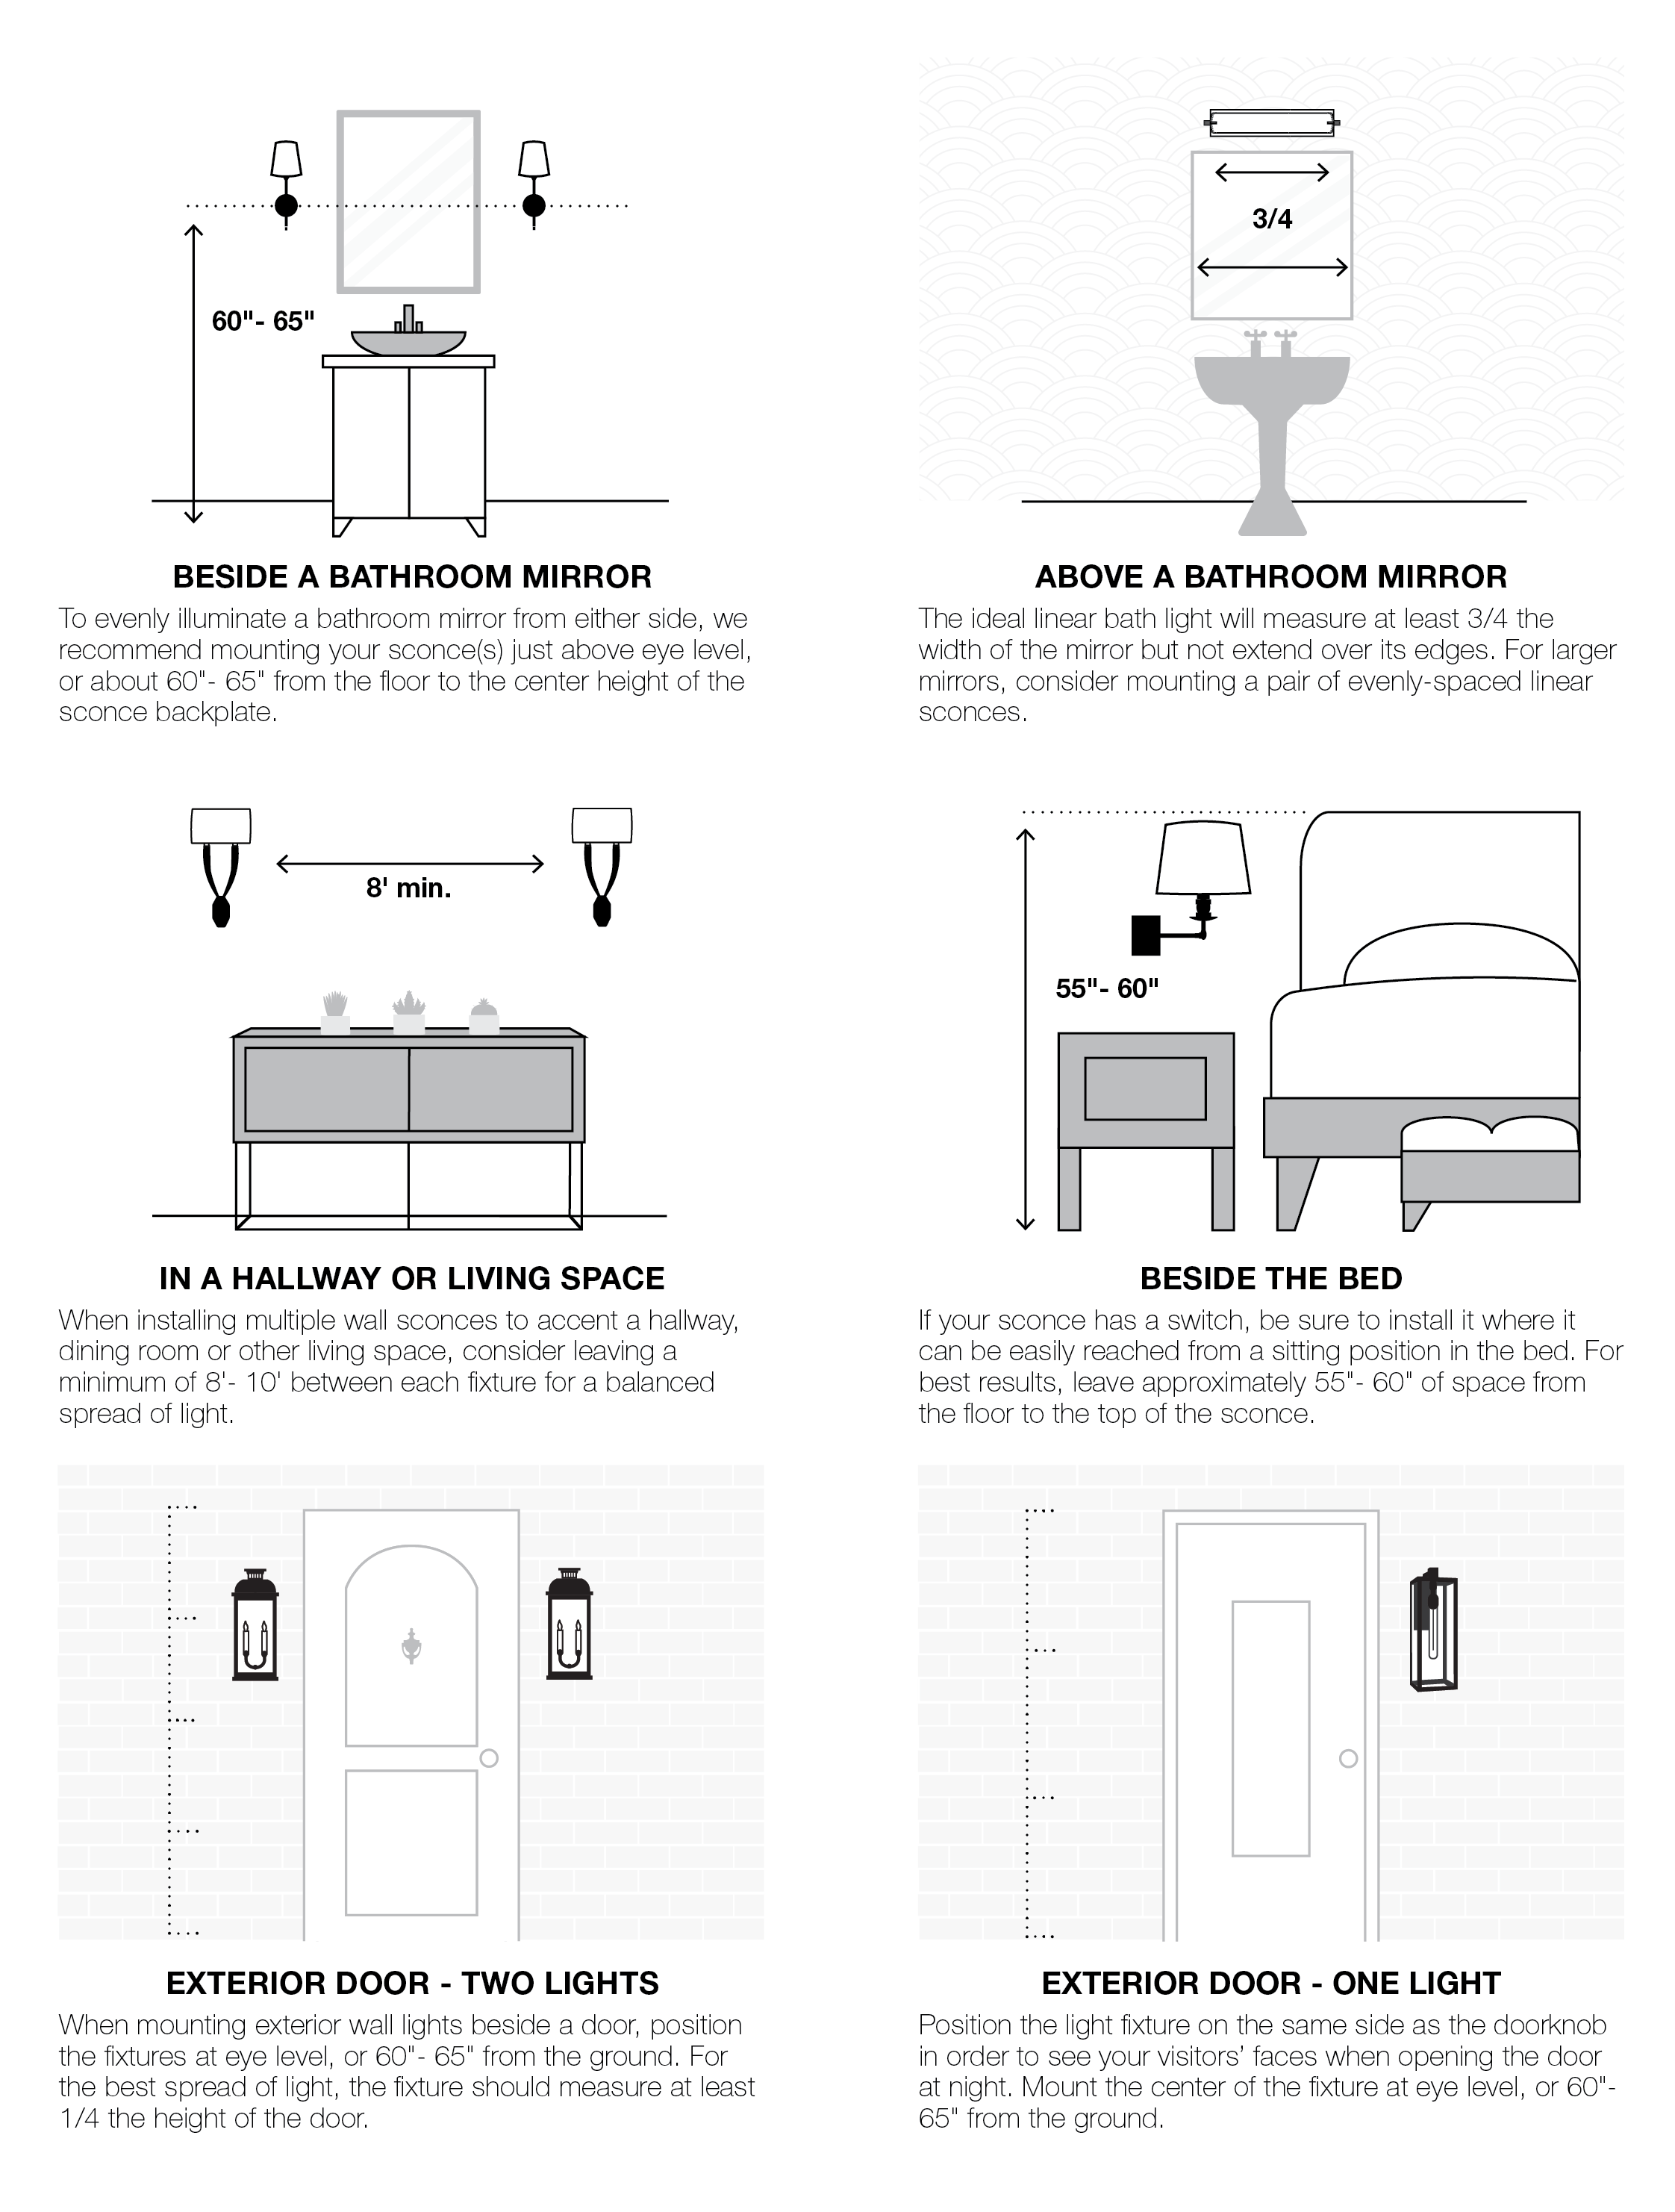 Wall Tips (With images)   Bathroom sconces, Bathroom light ... on Height Of Bathroom Sconce Lights id=97577